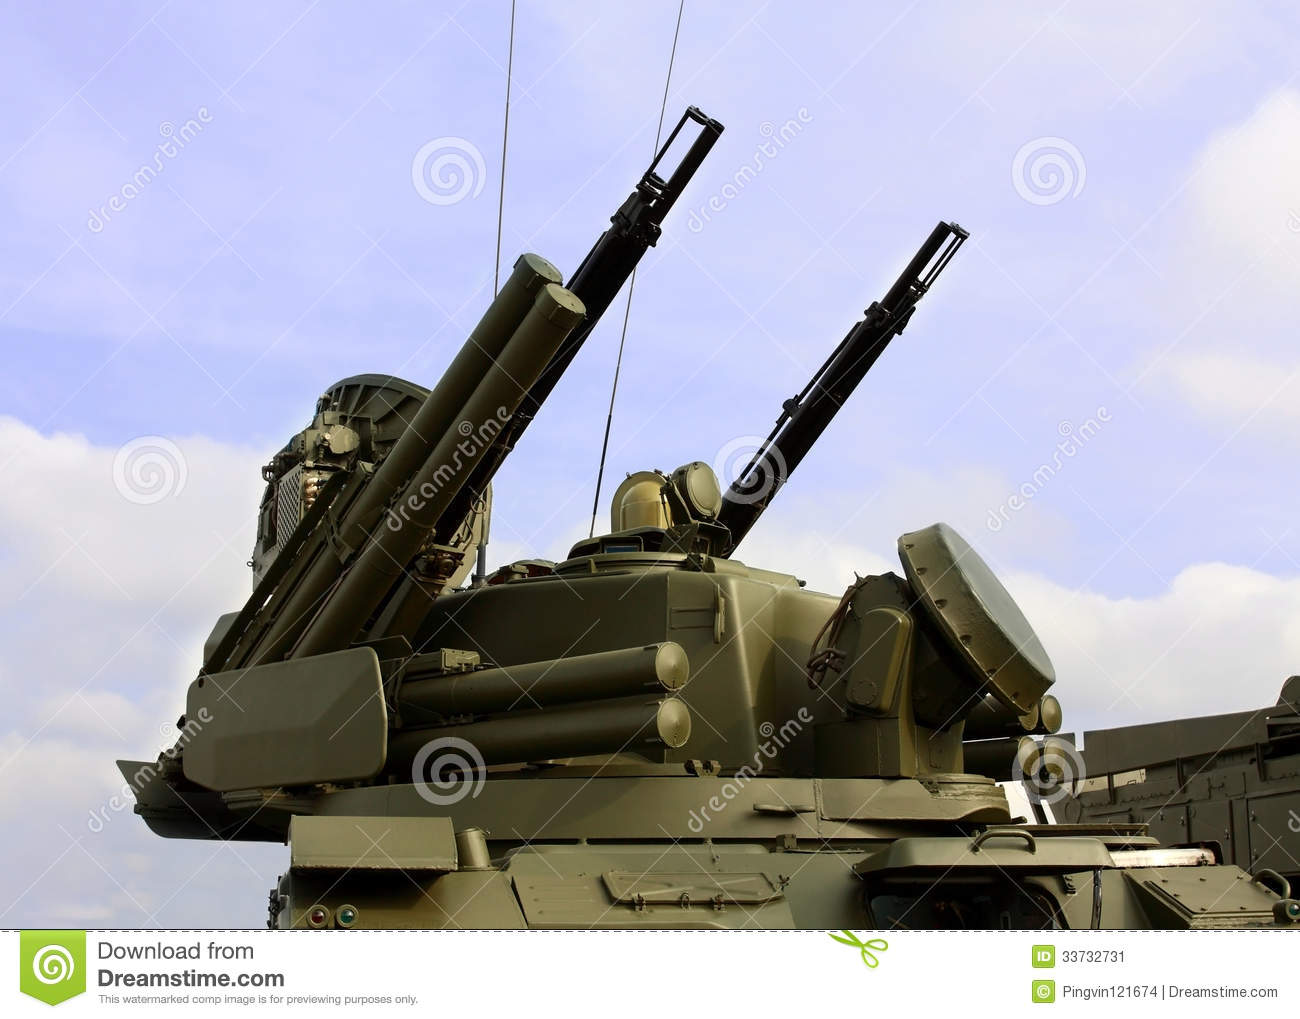 Weapons Of Anti-aircraft Defense Stock Image - Image: 33732731